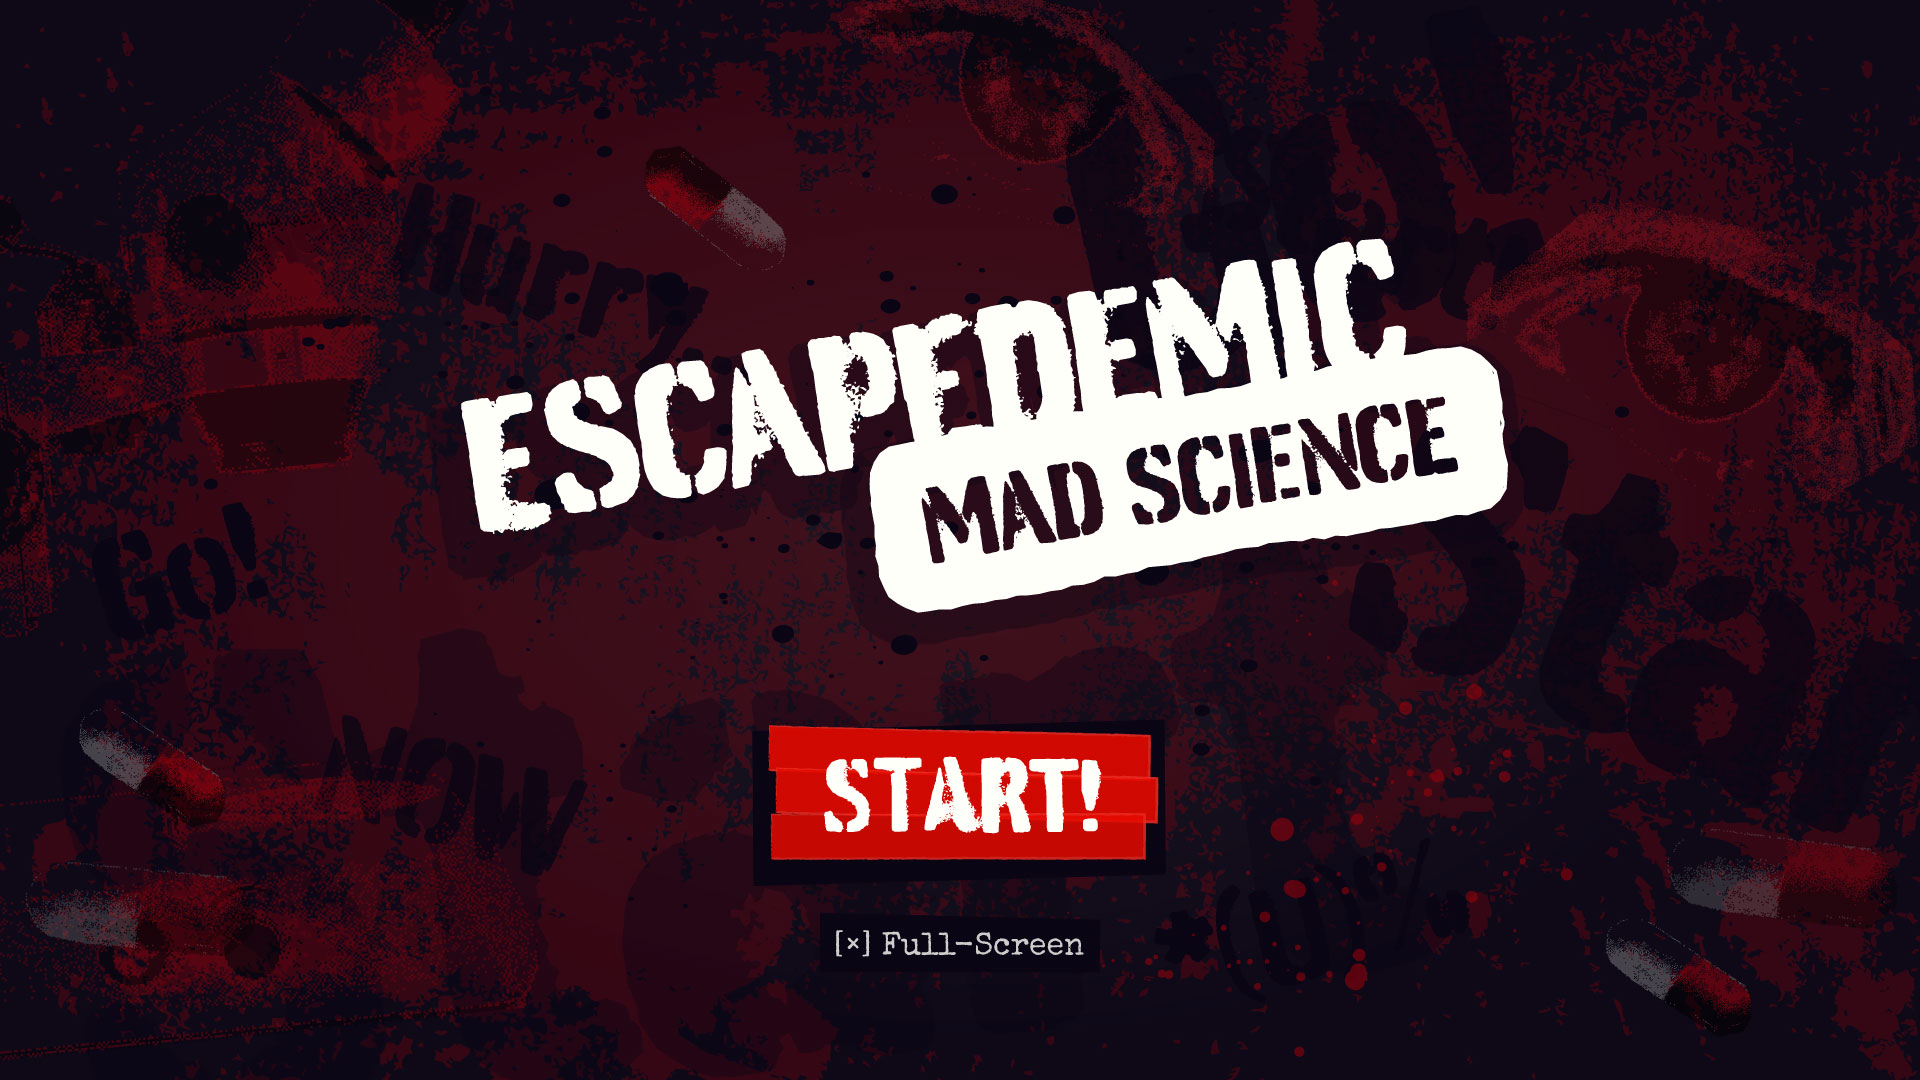 Escapedemic mad science